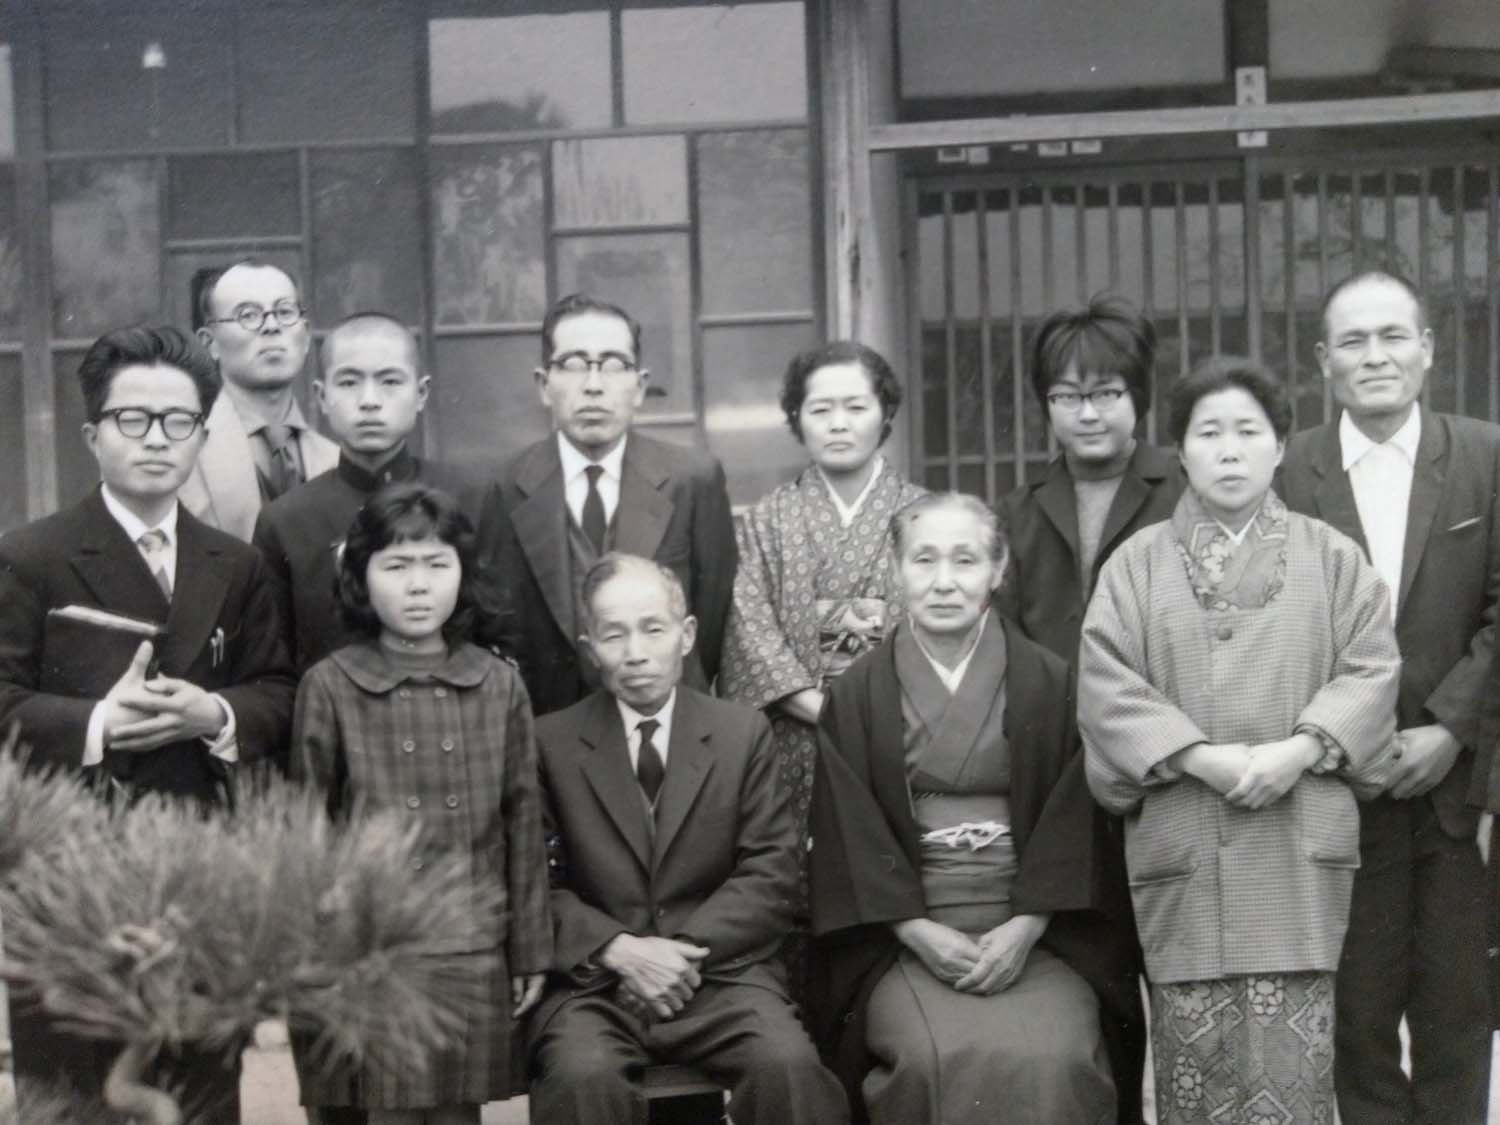 Akeri Parents on far right with Church Members